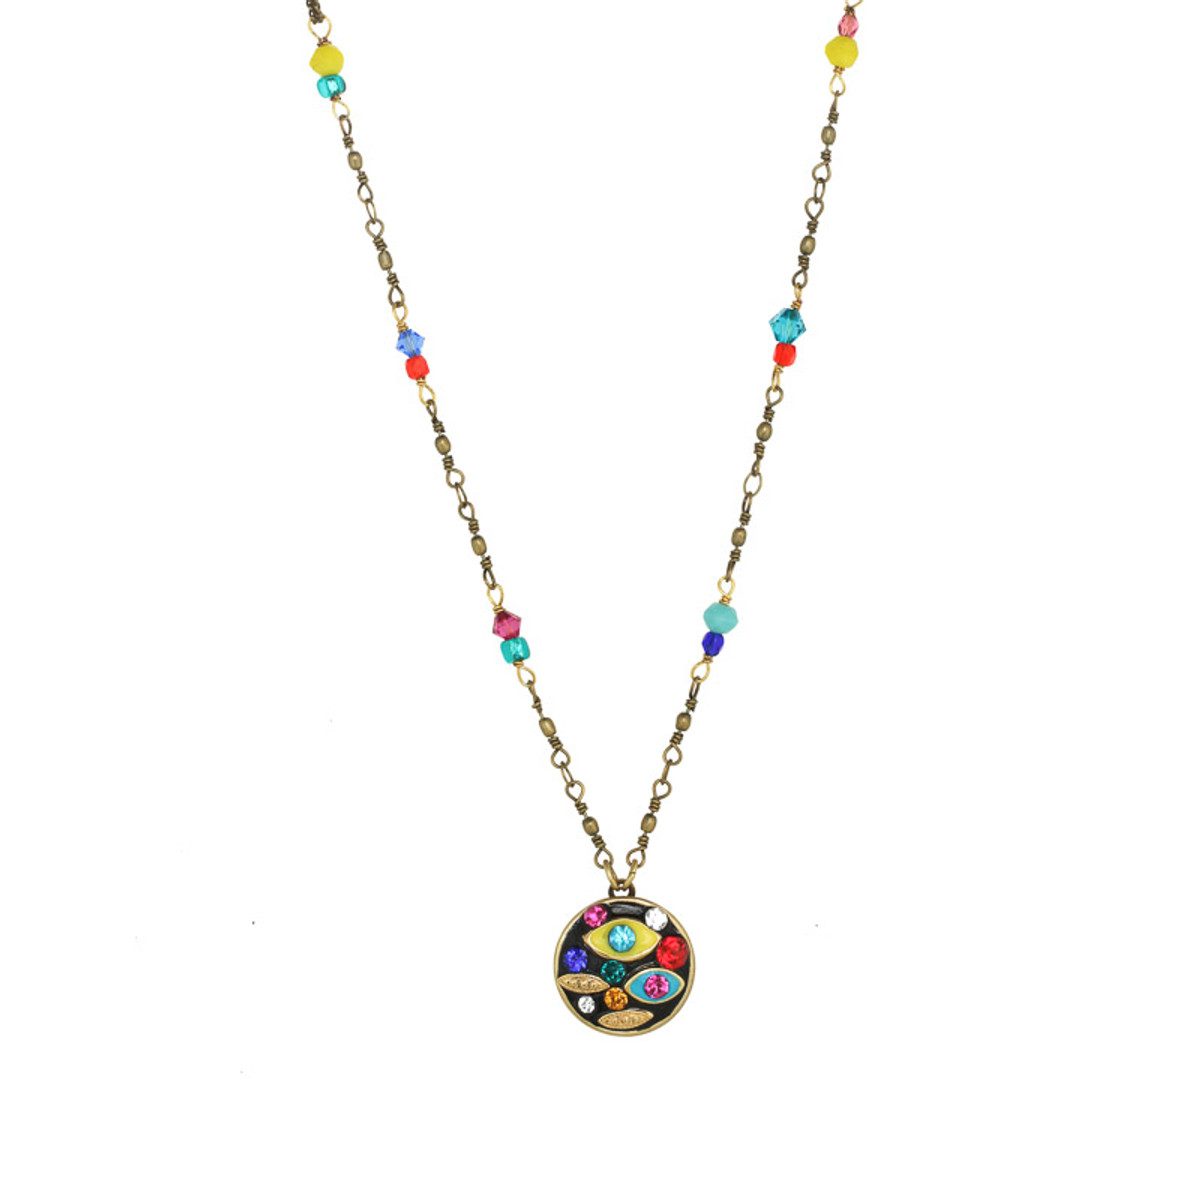 Michal Golan Jewelry Small Round Multi-eye Necklace